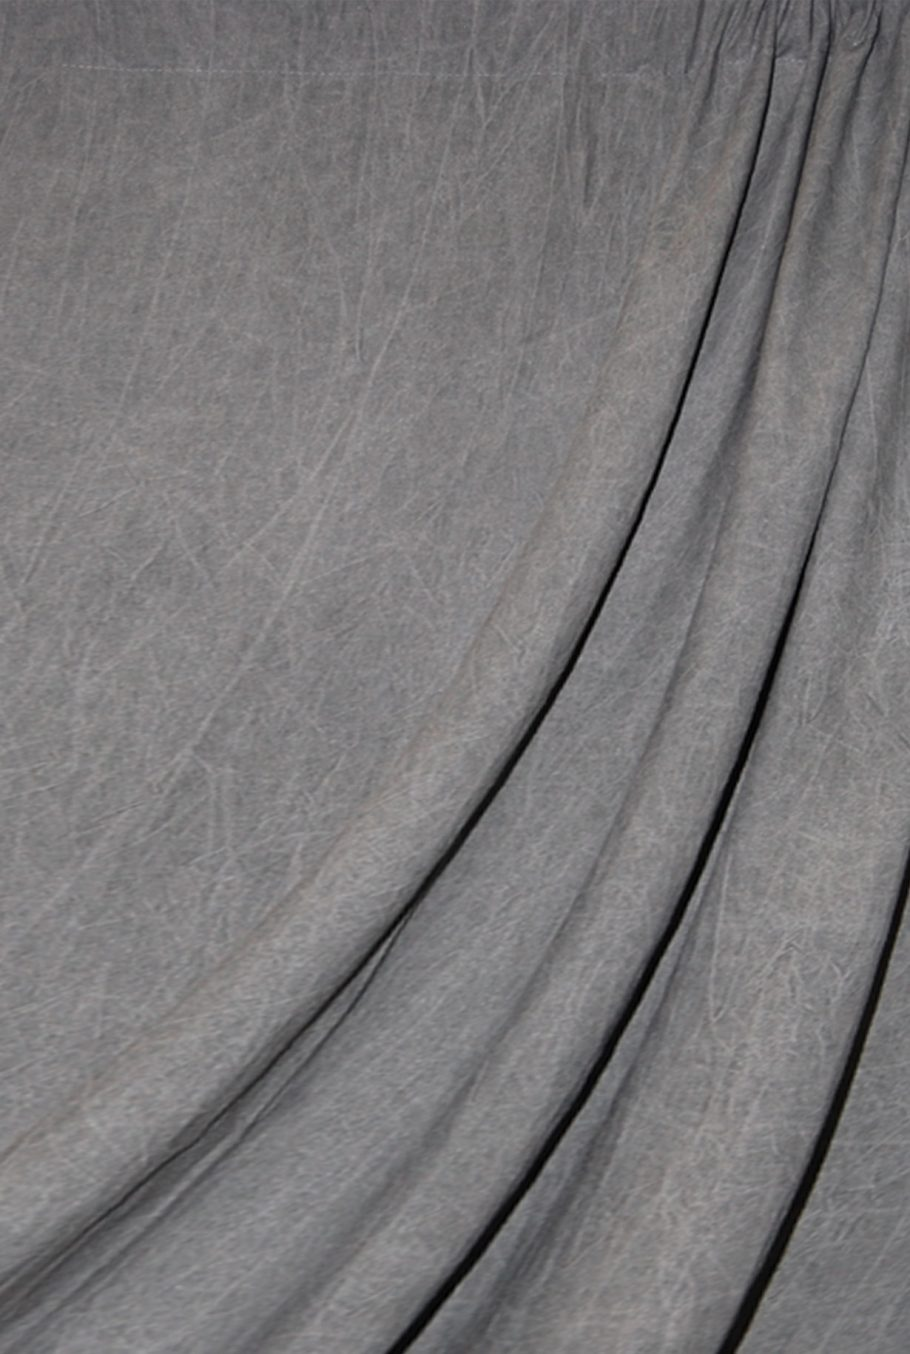 Dark Gray Washed Muslin Backdrop Image 1